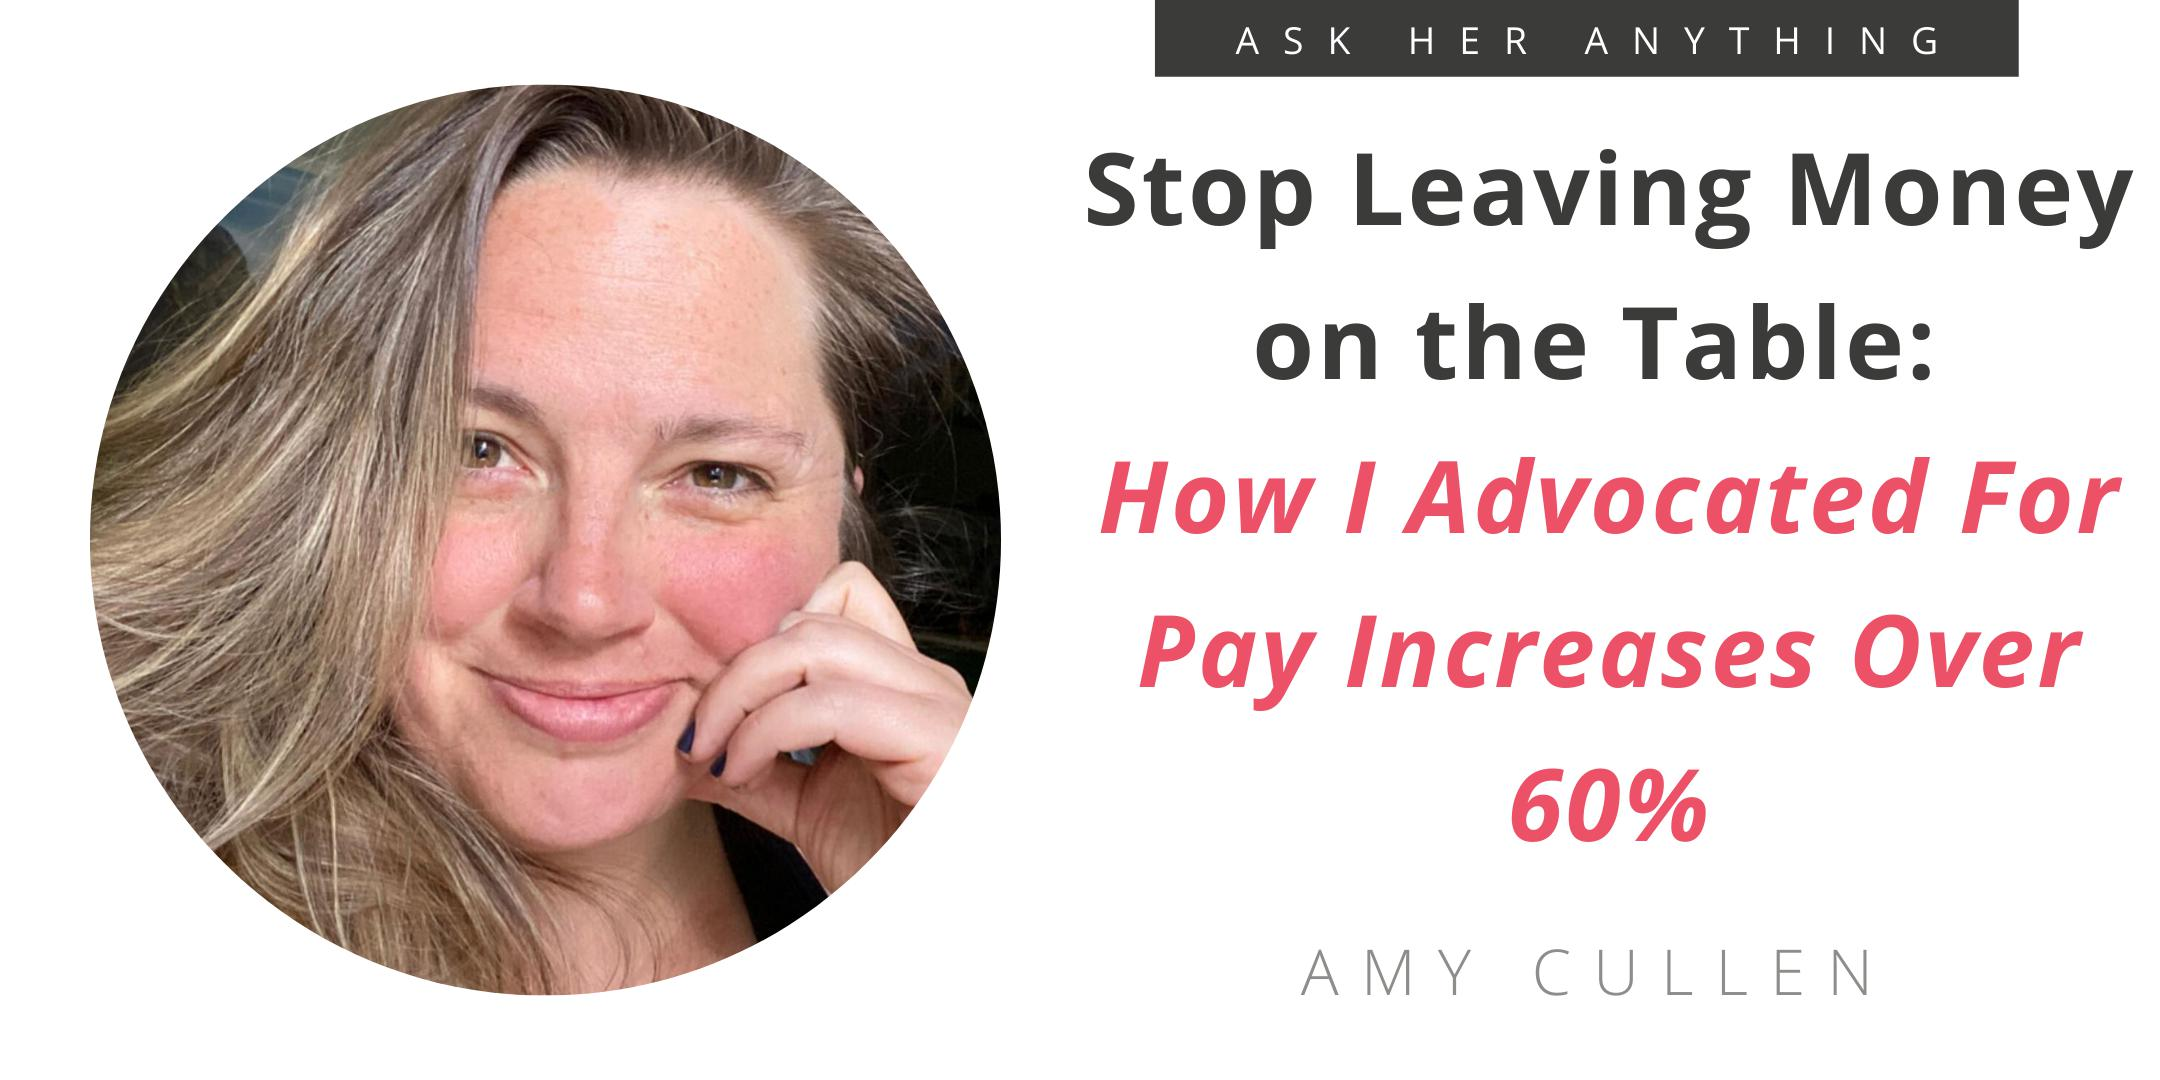 Stop Leaving Money on the Table: How I Advocated For Pay Increases Over 60%